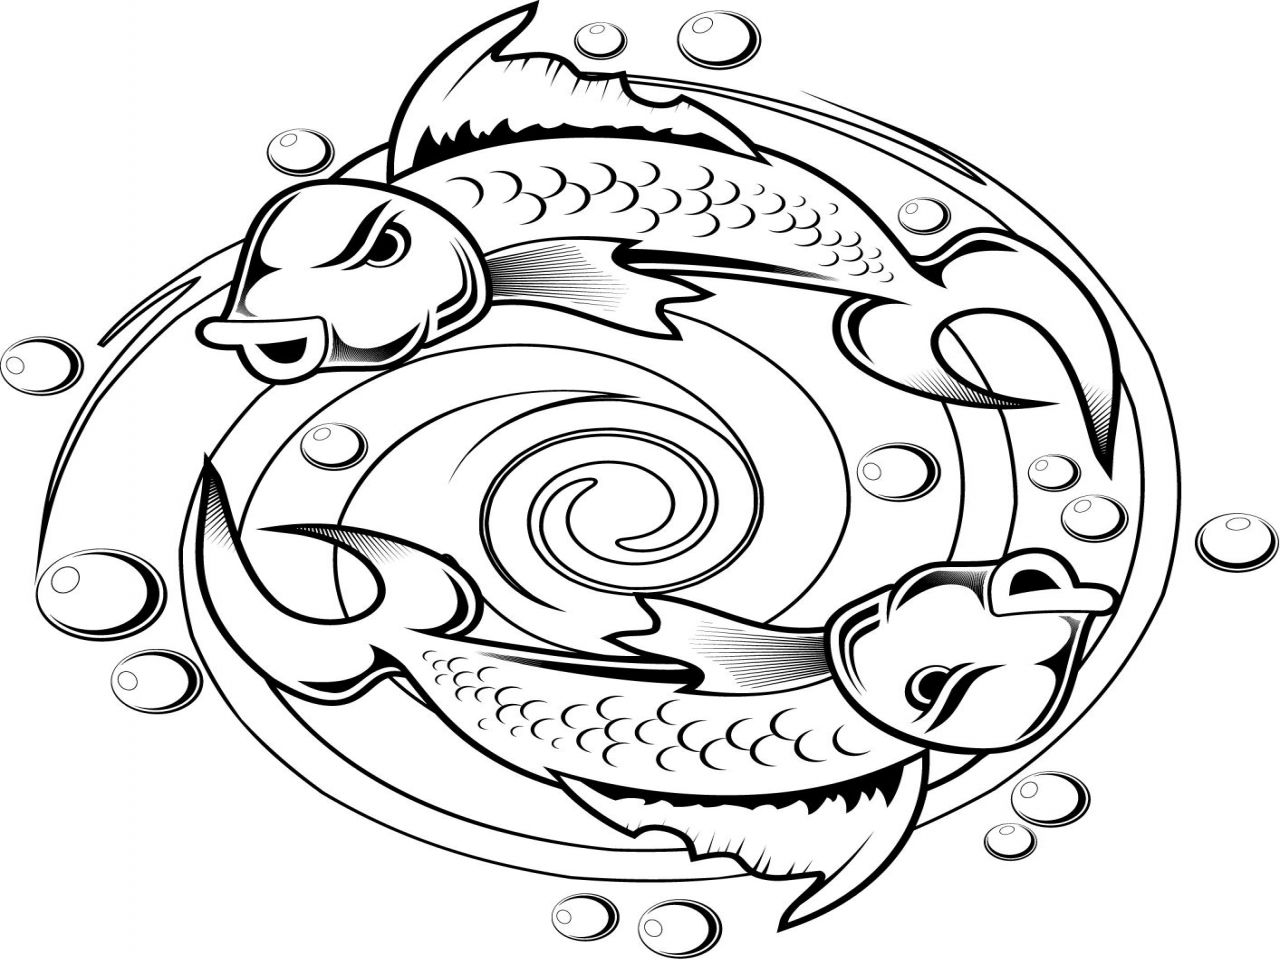 1280x960 Startling Infinity Sign Coloring Pages Japanese Designs